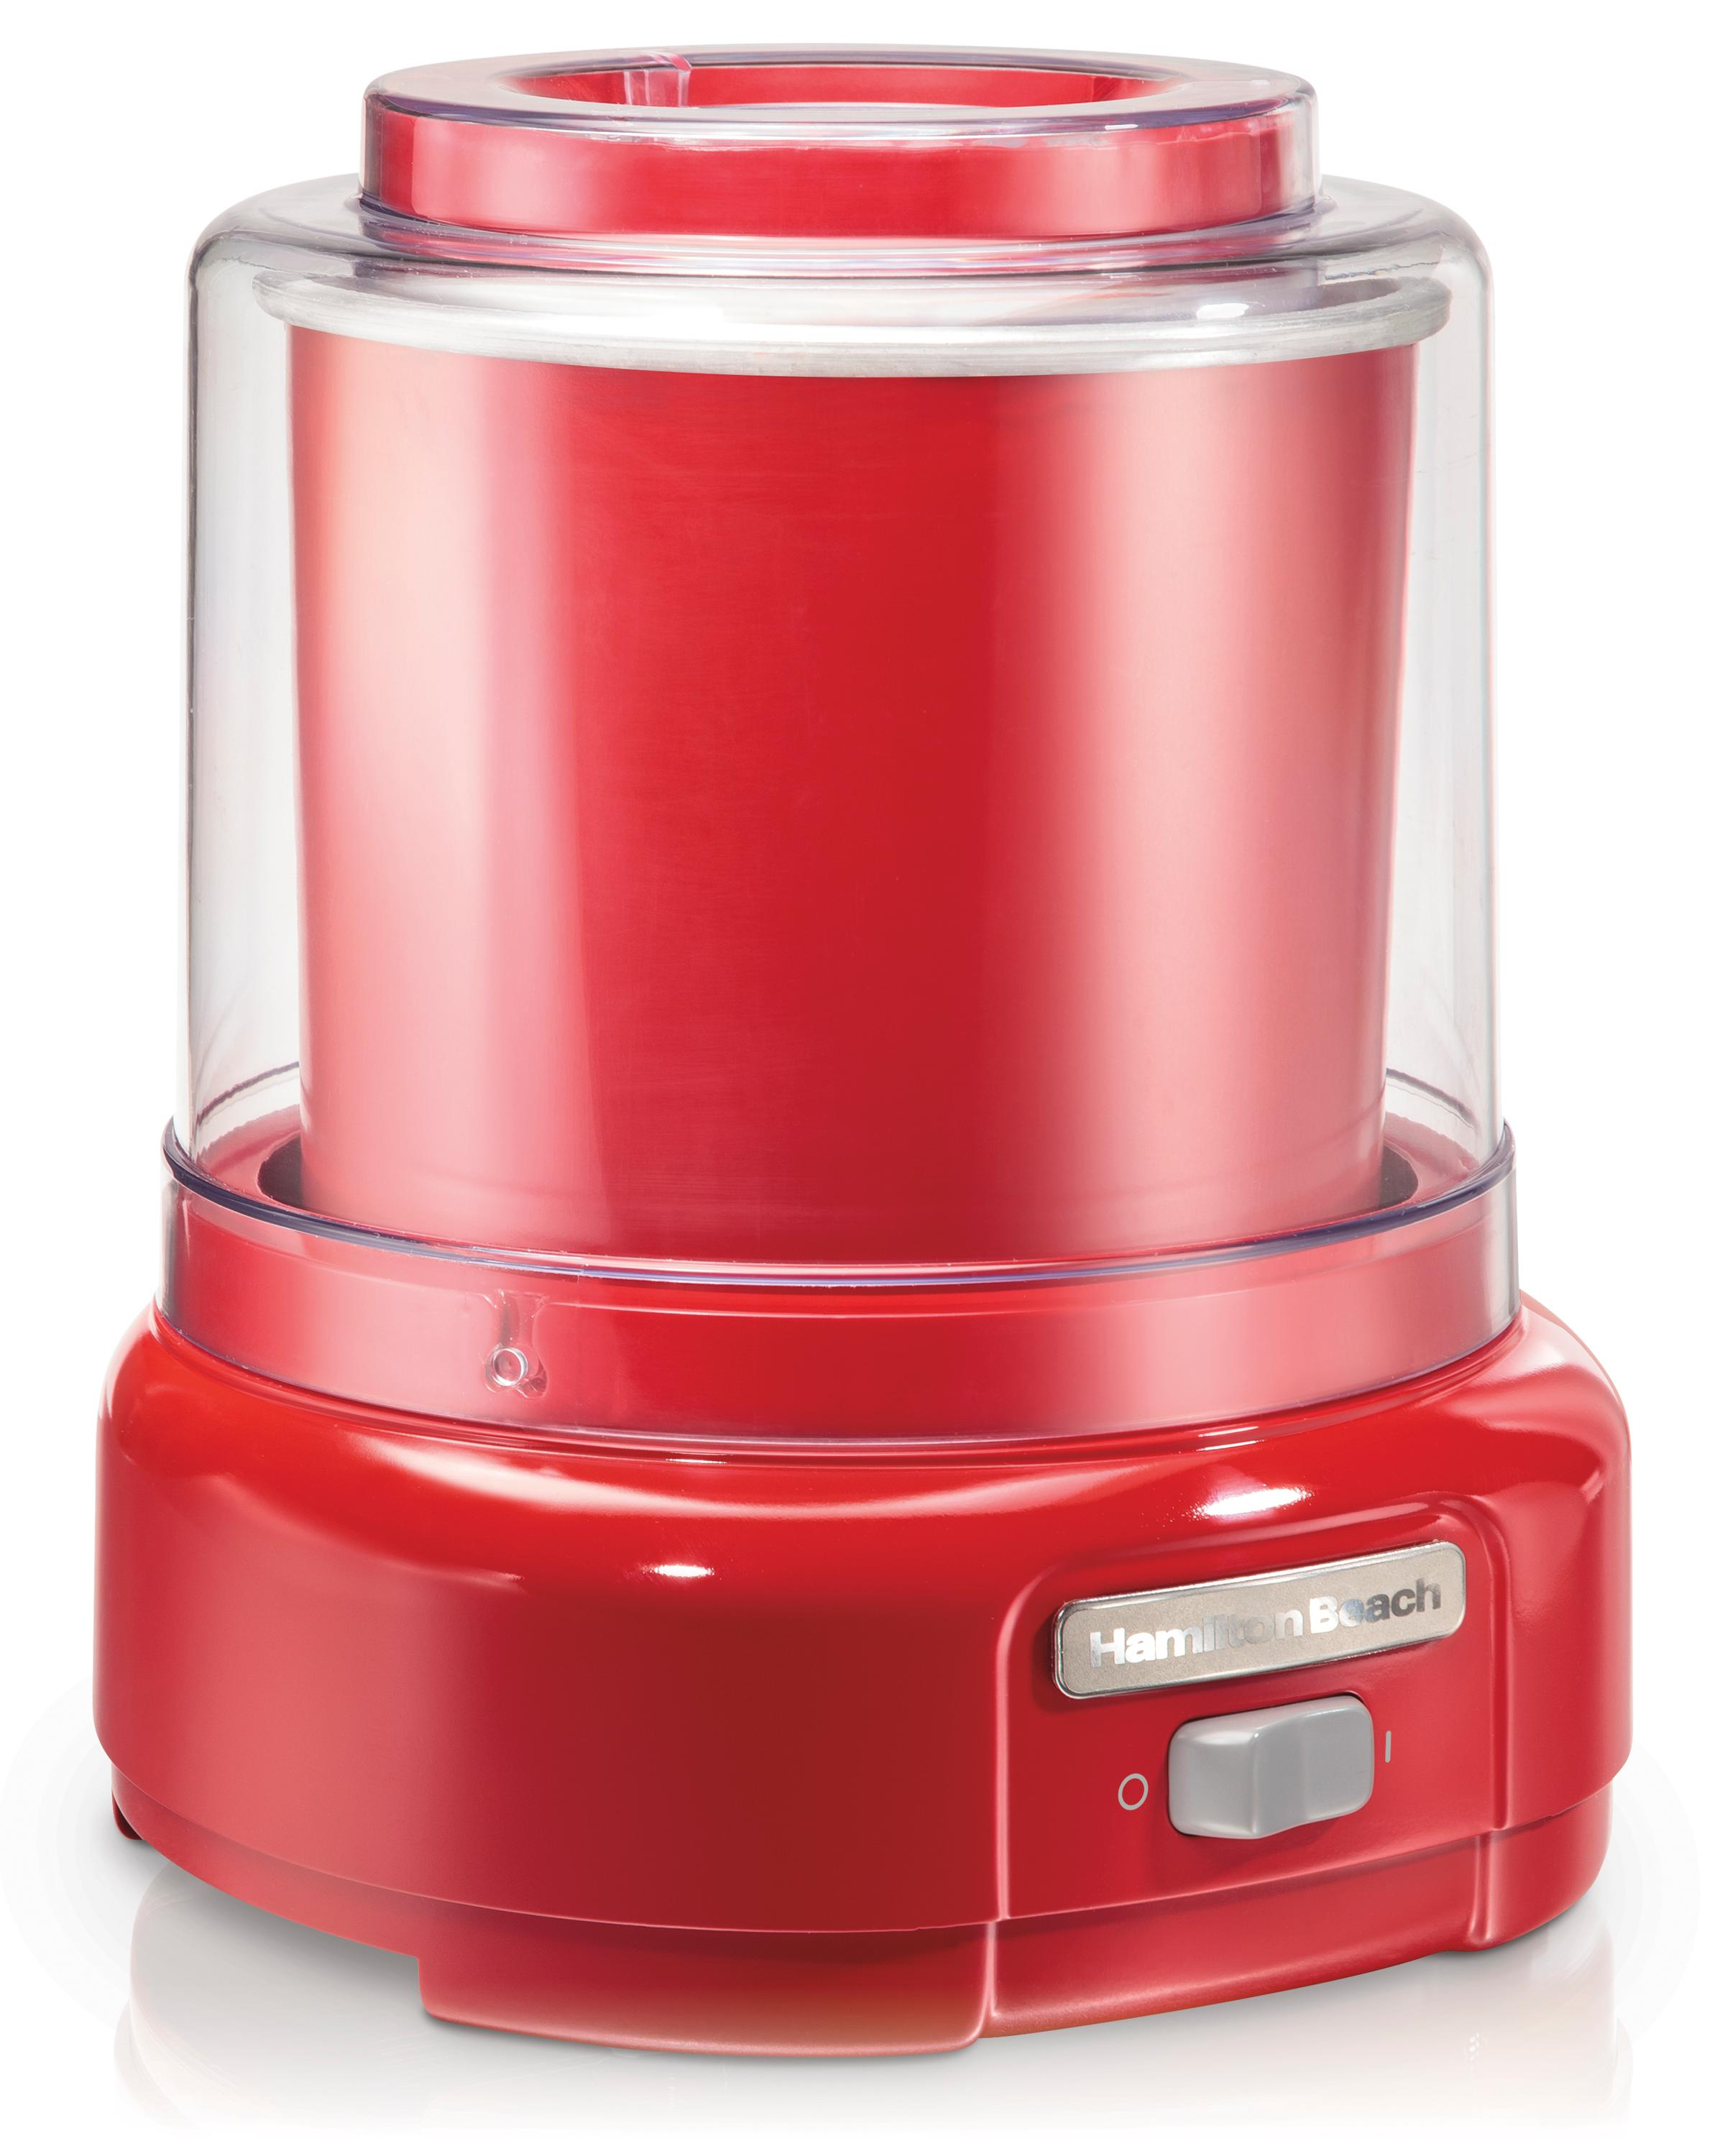 Nice Ice Cream Maker Reviews Part - 9: View Larger